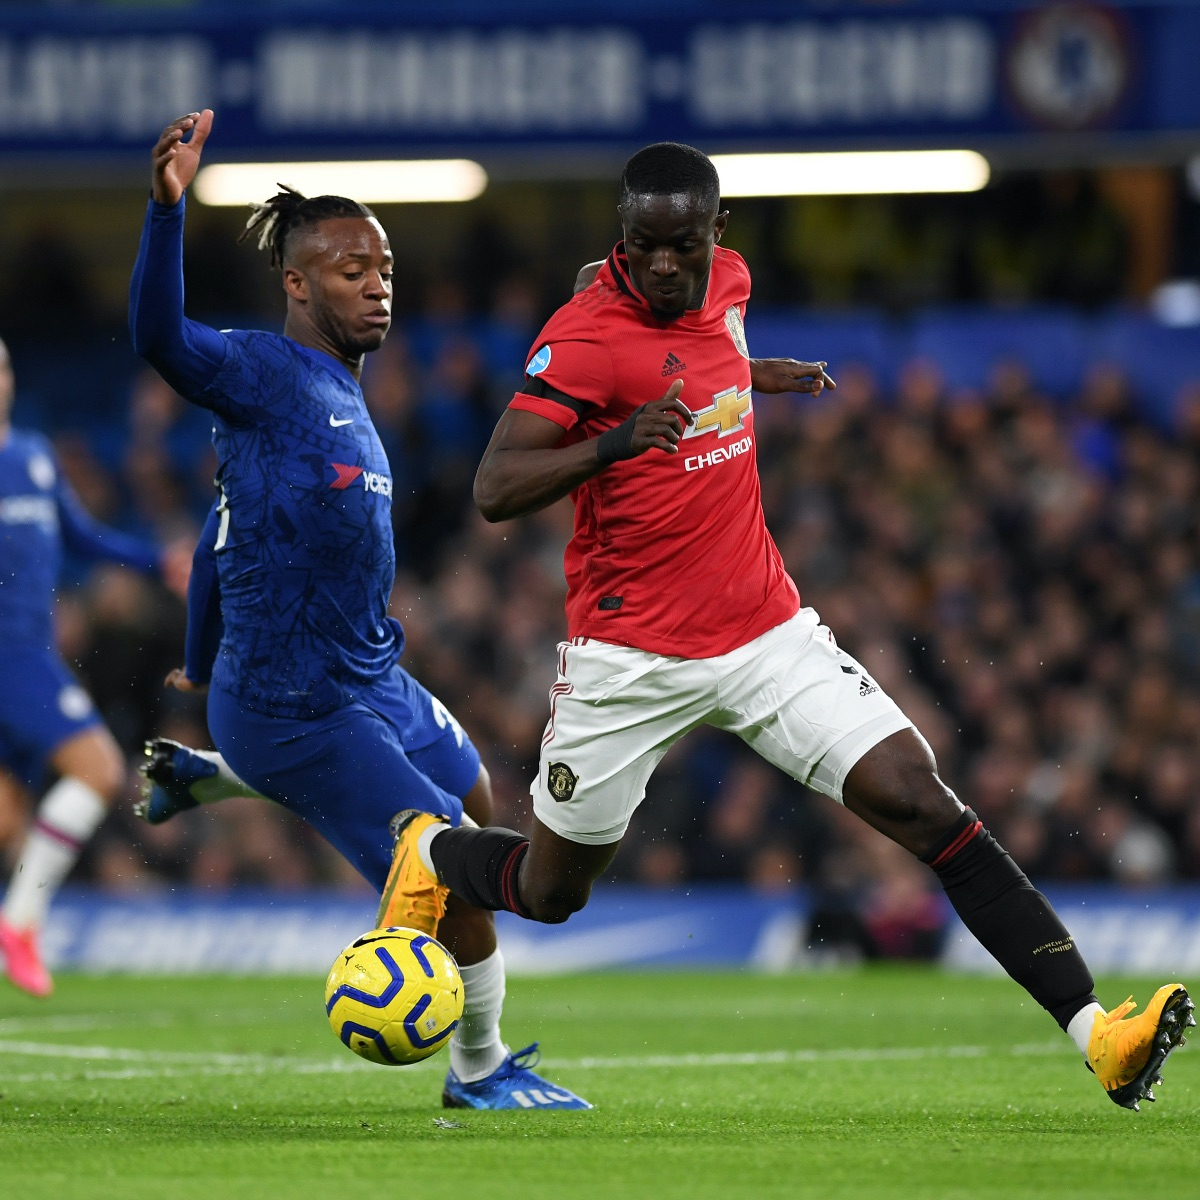 Just 50 seconds of @EricBailly24 defending against Chelsea. That's it. That's the tweet. #MUFC